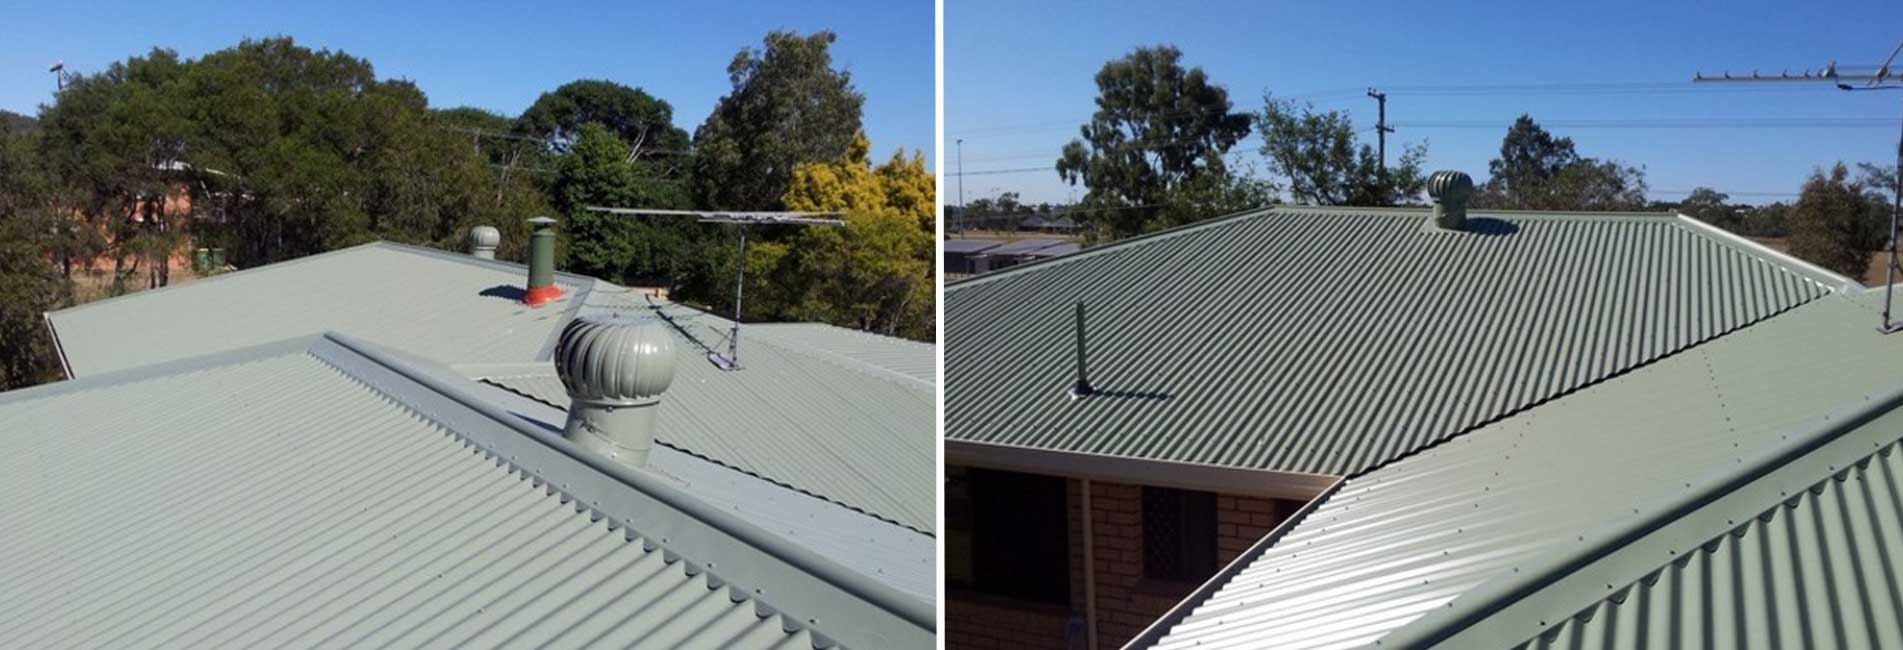 Domestic Roof Tiling Albany Creek, Roofing Beachmere, Roof Painting Caboolture